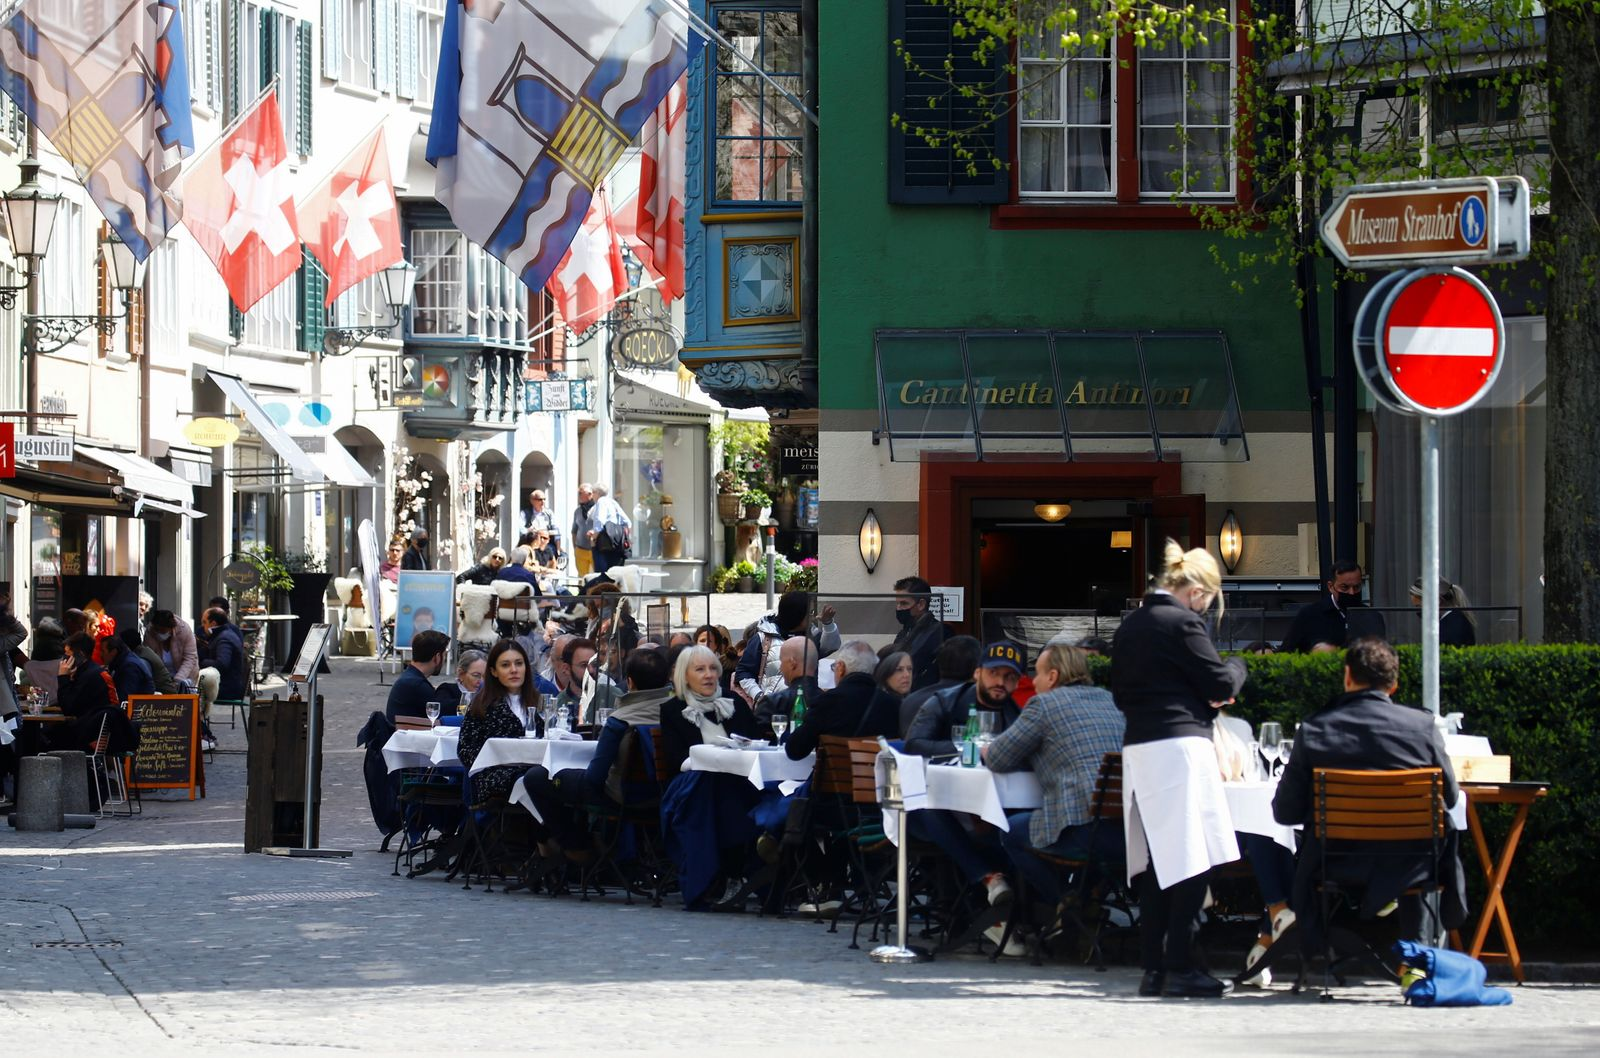 Guests sit in front of a restaurant in Zurich